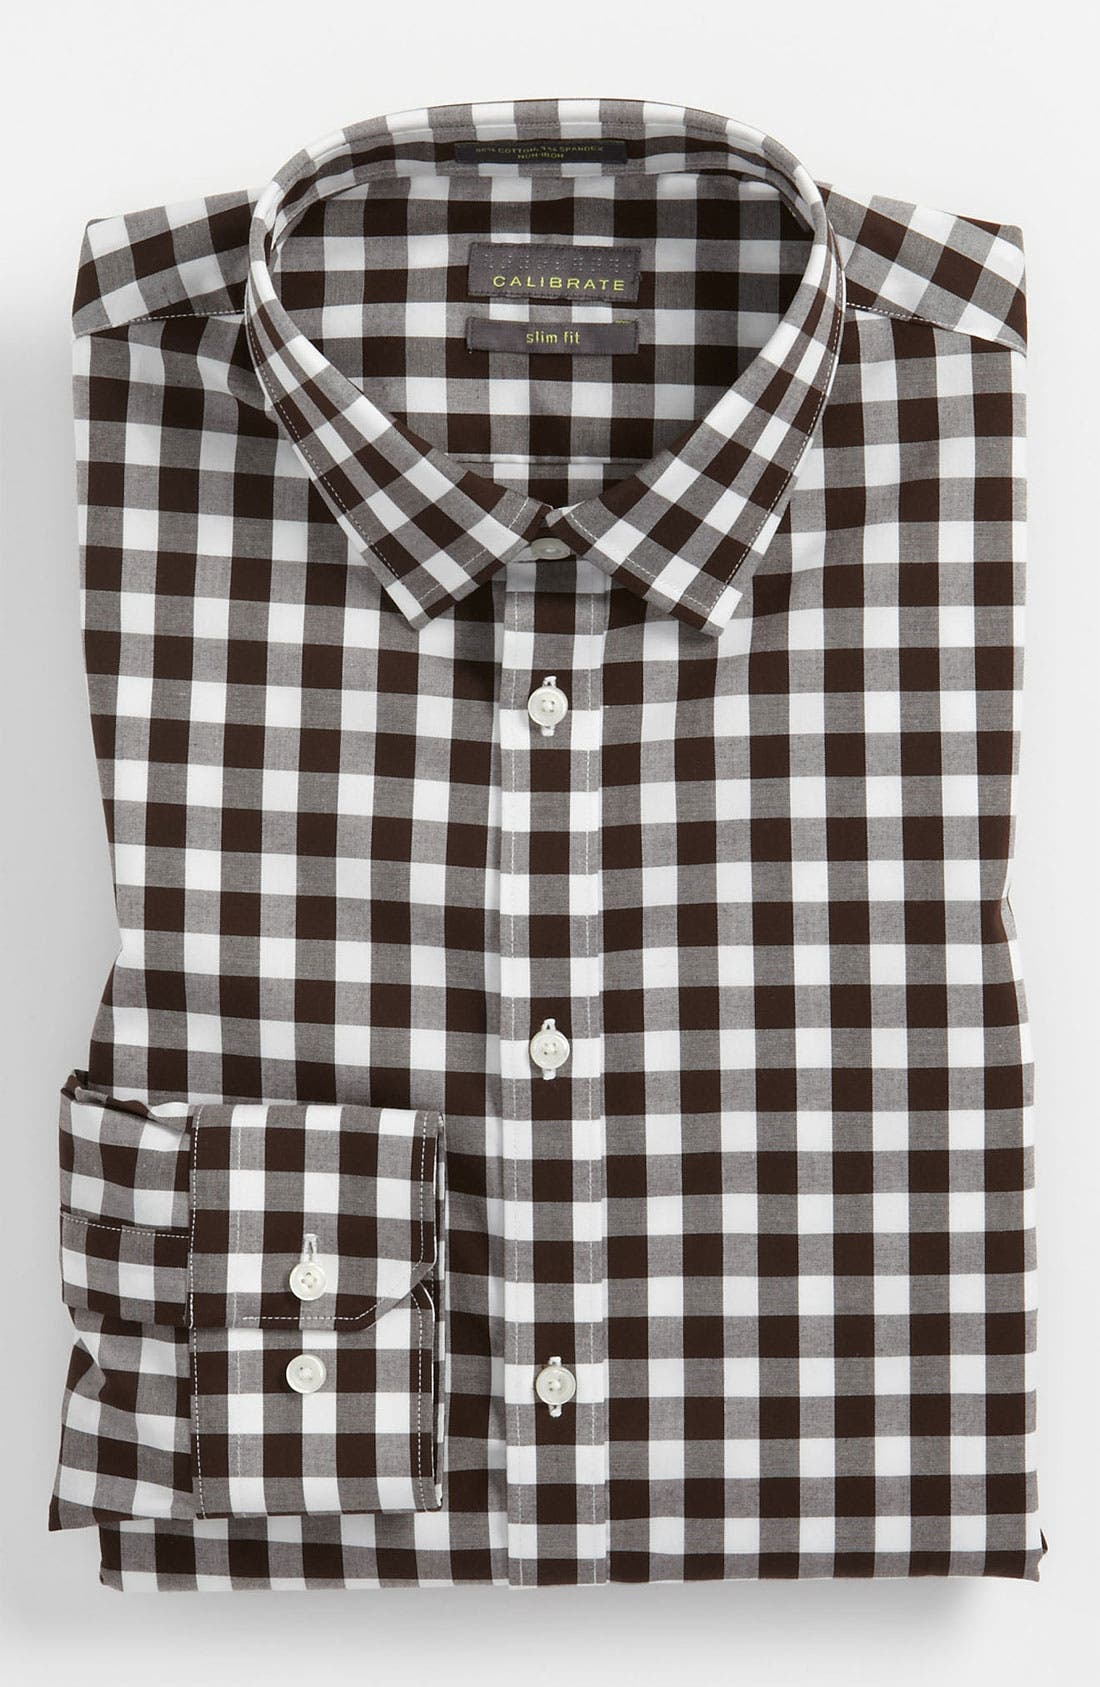 Alternate Image 1 Selected - Calibrate Slim Fit Non Iron Gingham Dress Shirt